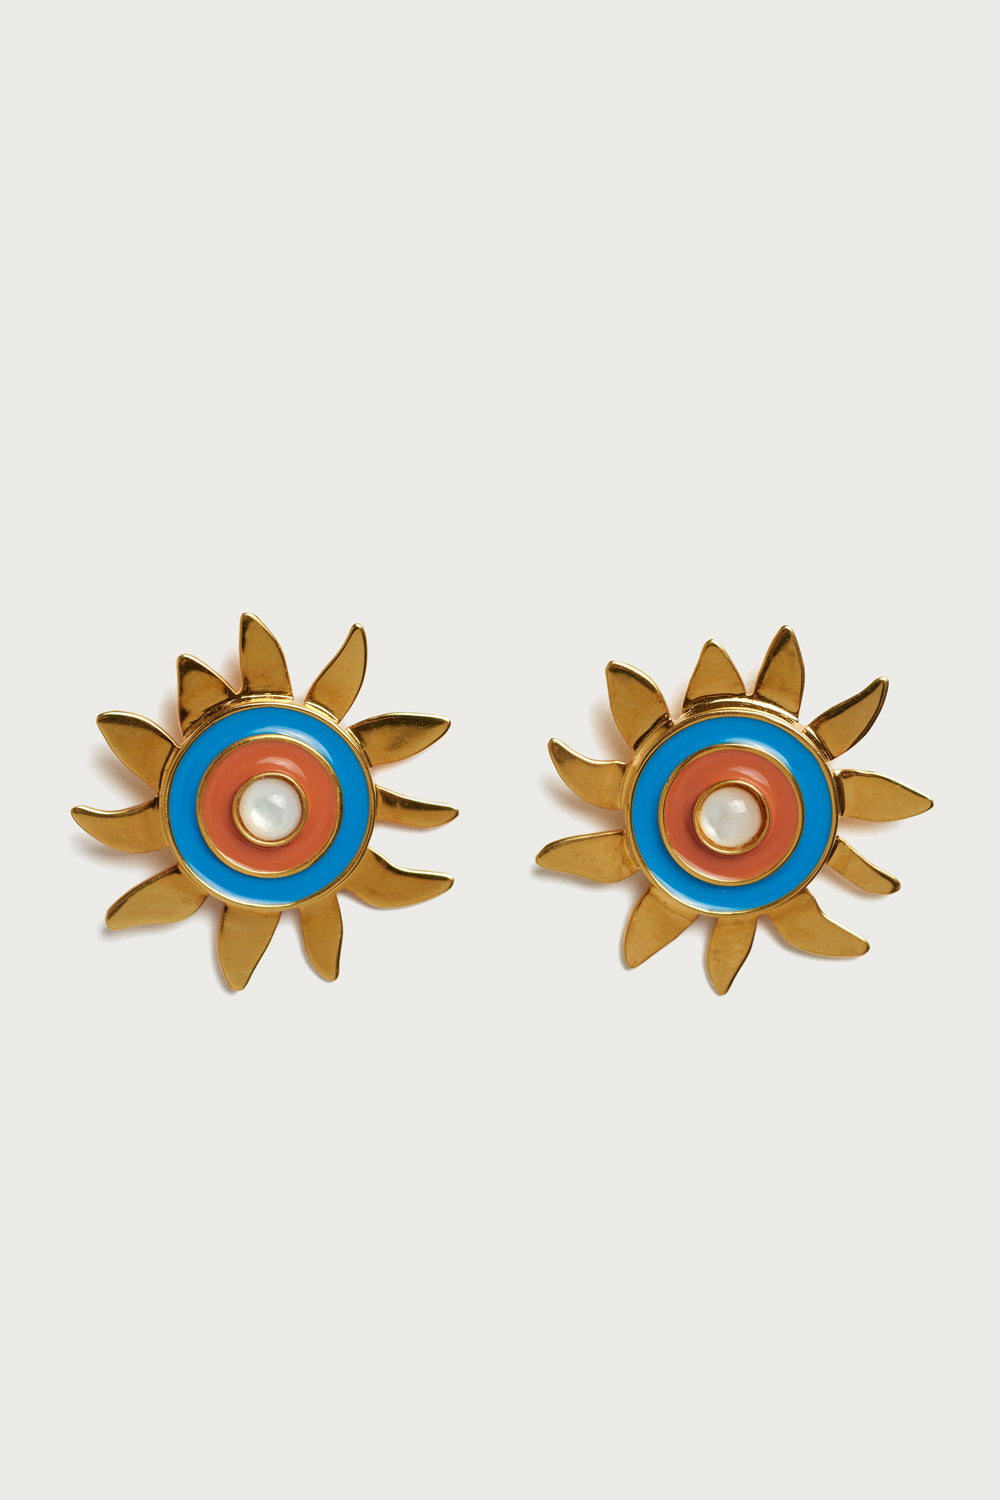 Lizzie Fortunato Corsica Sun Earrings - Vert & Vogue